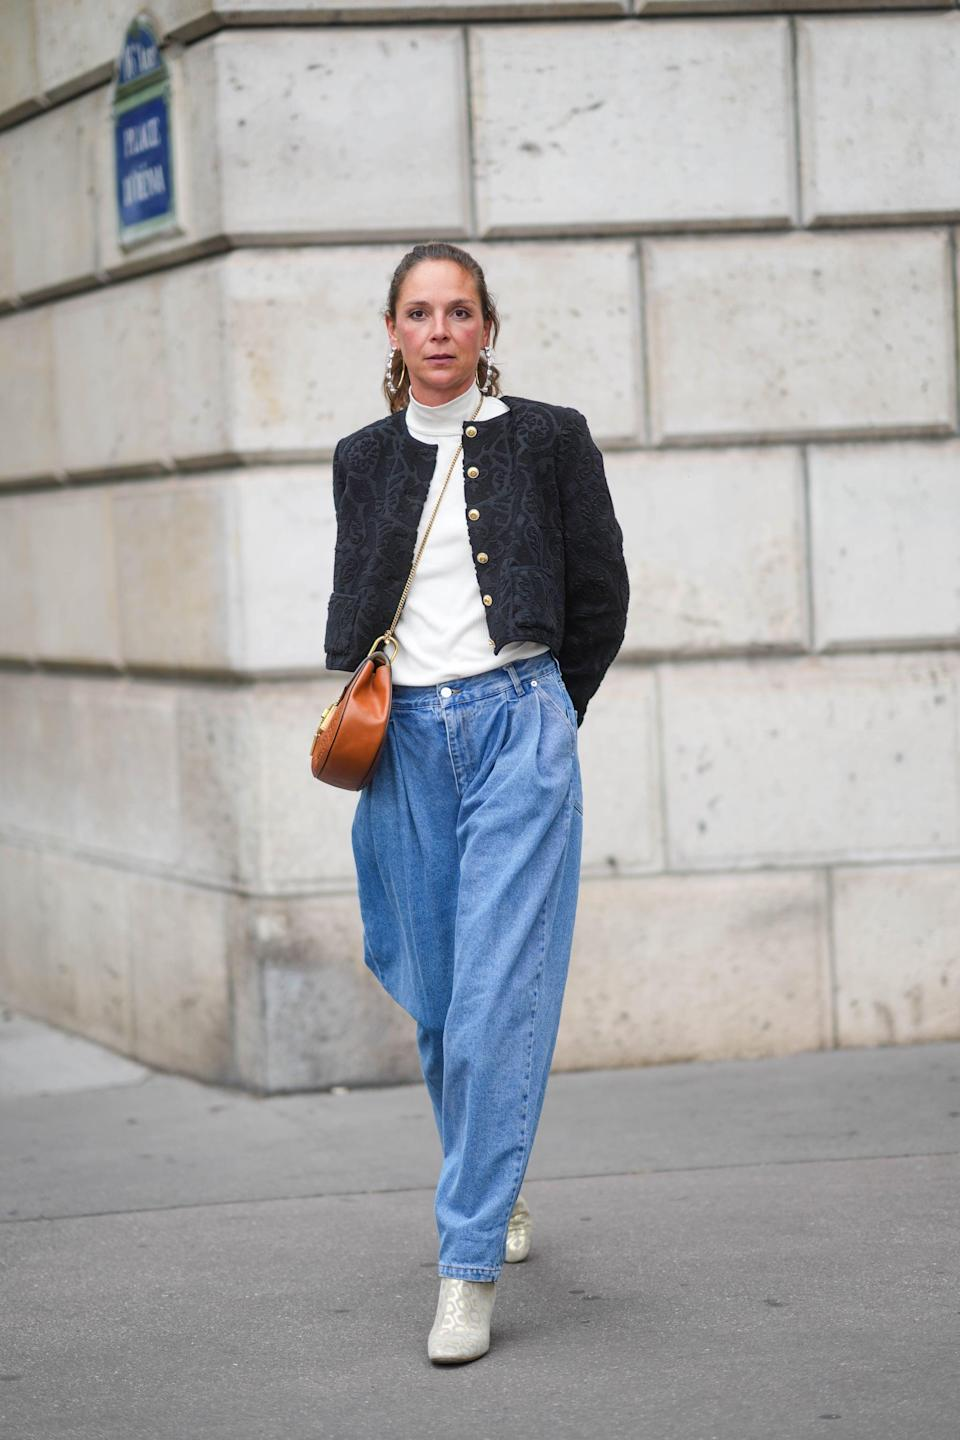 <p>A blissful ode to the '80s, tapered high-rise barrel jeans are a sleeker, more stylized take on the mom jean. They can be easily paired with turtlenecks for winter and fitted tanks or plain muscle tees for hotter months. If you really want to go all-out '80s, opt for an acid wash.</p>